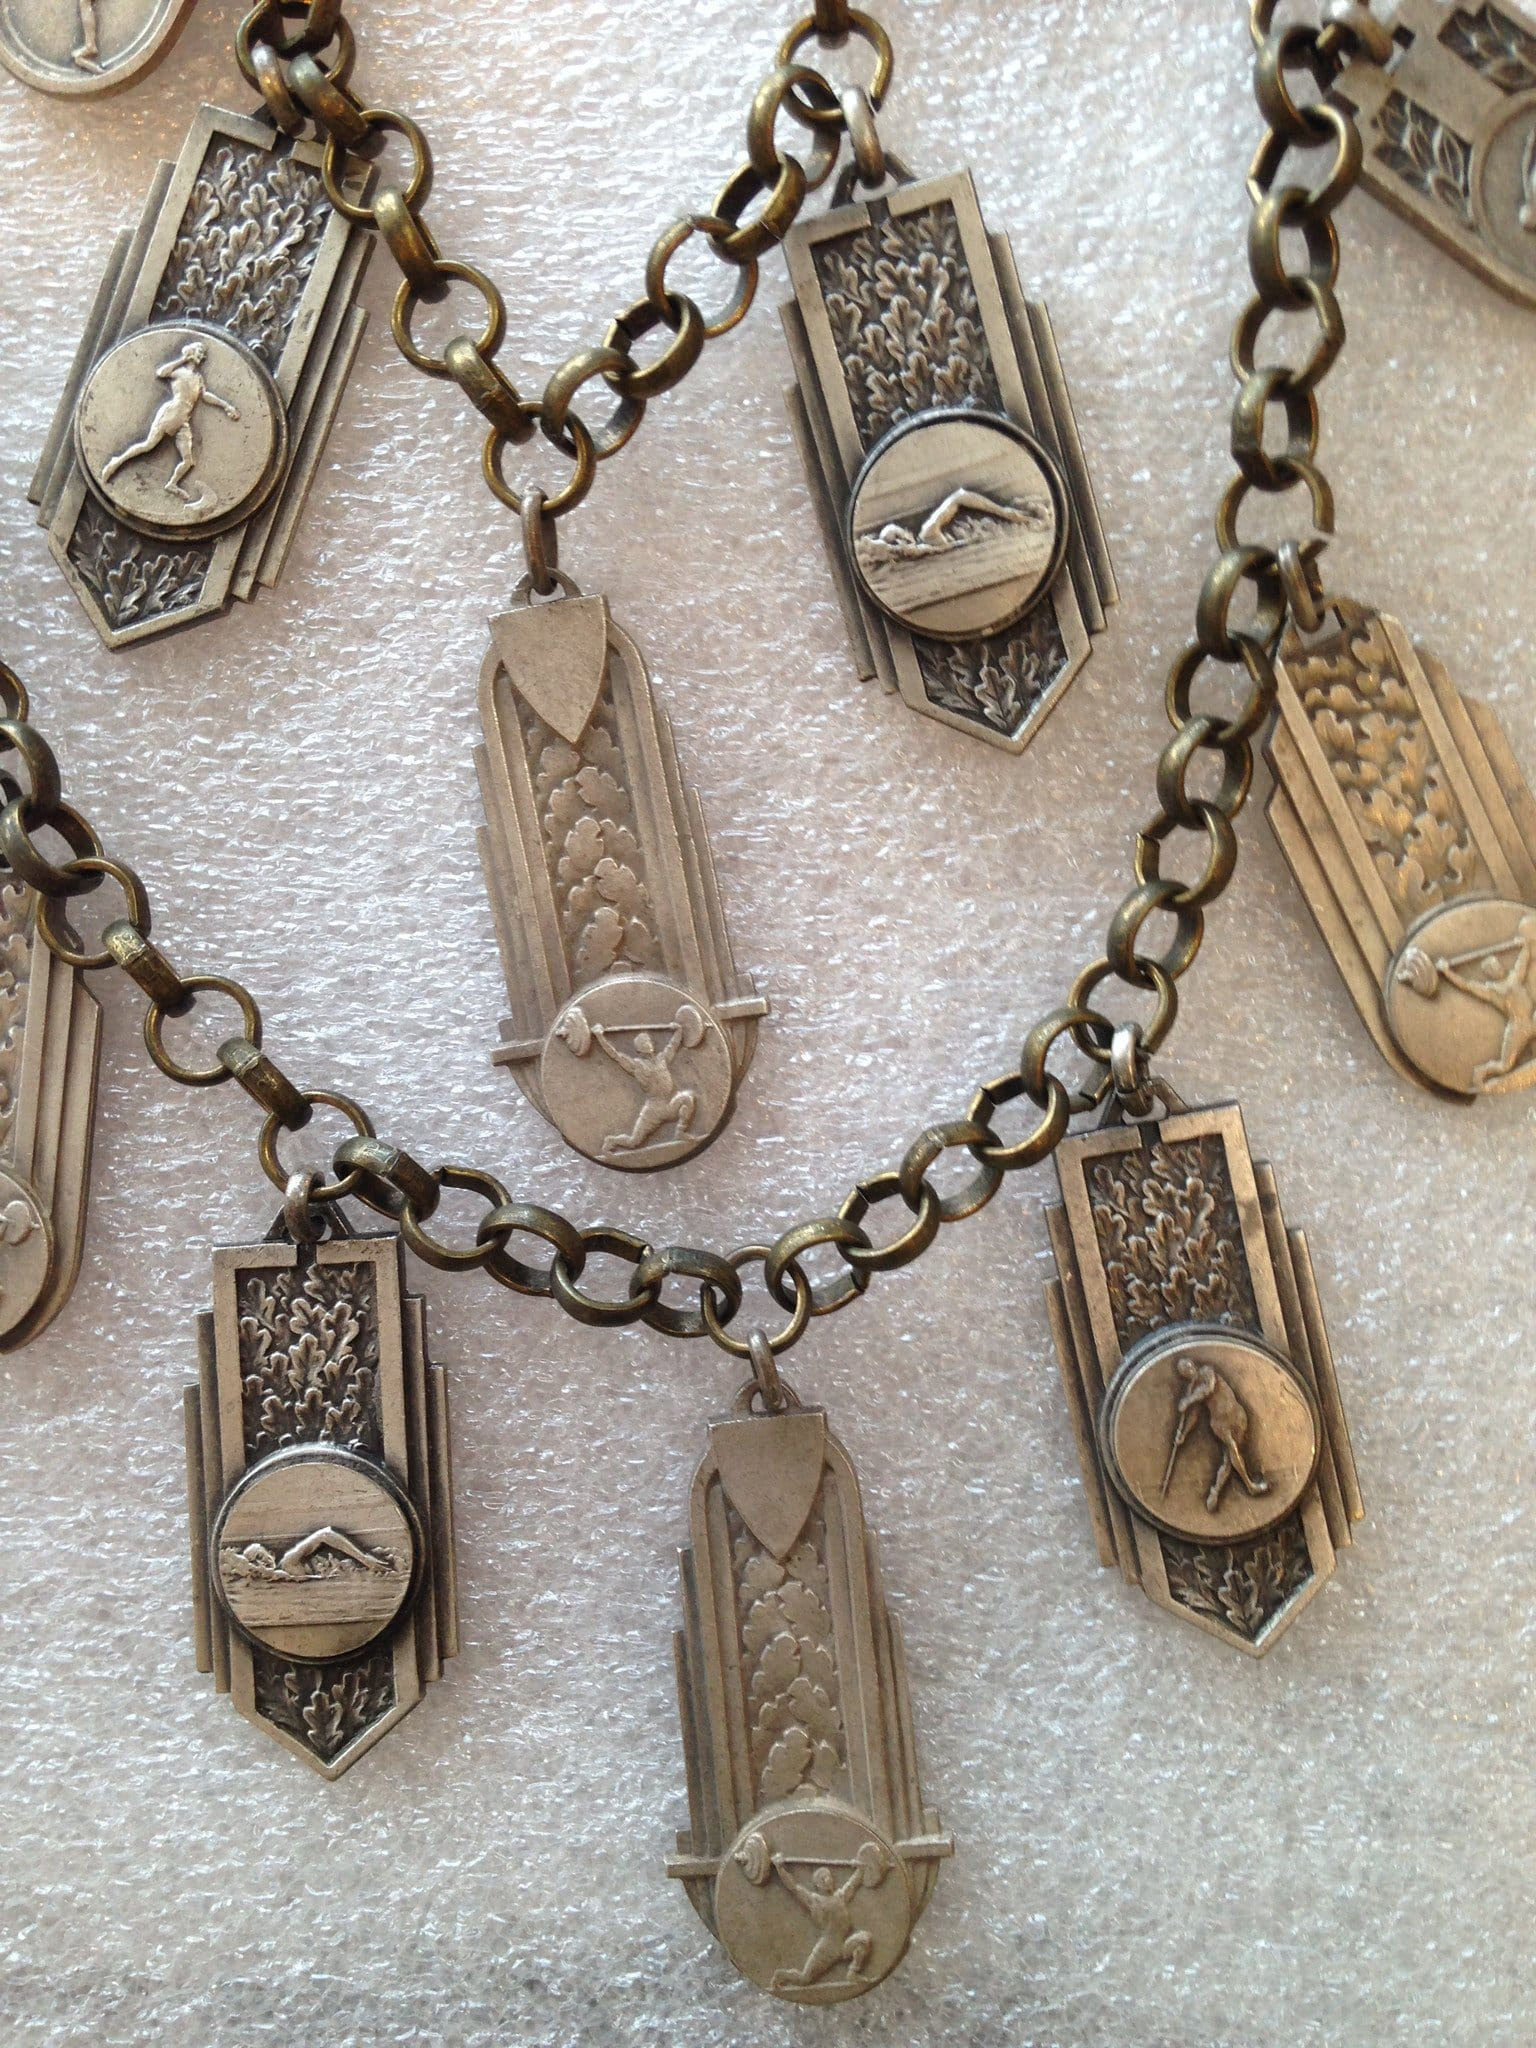 Vintage brass and silver-tone metal sports' medals necklace